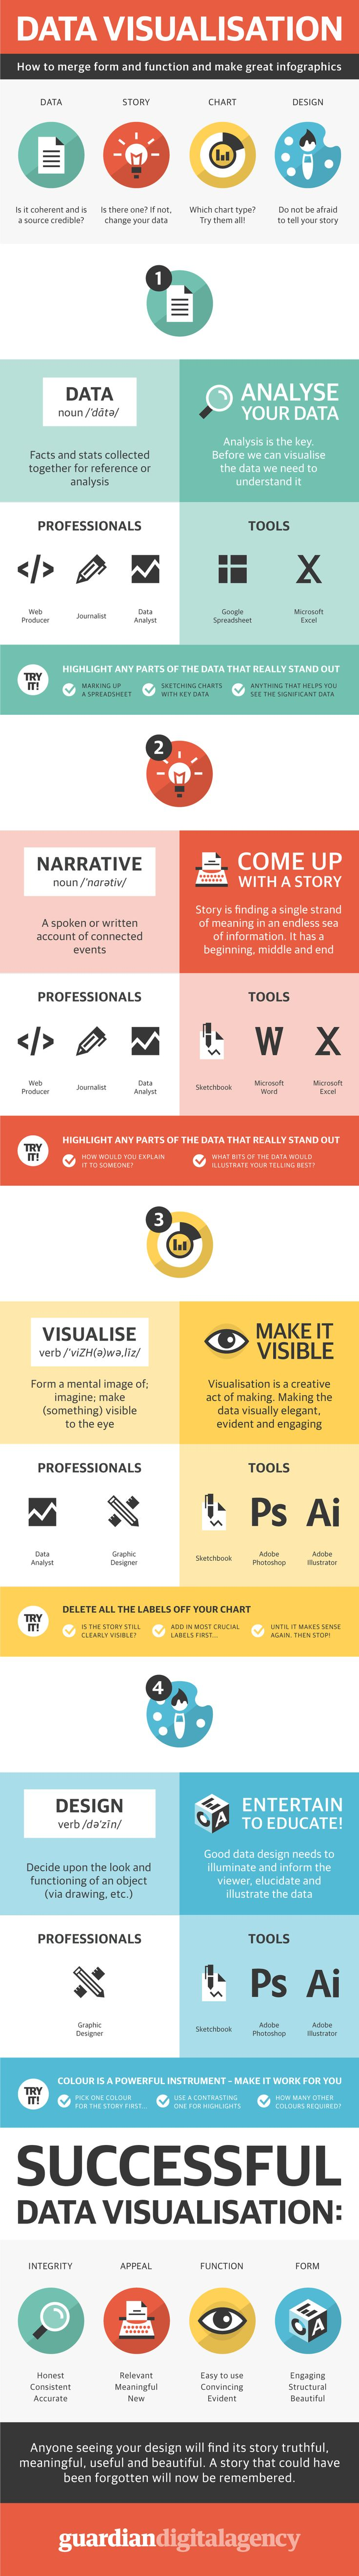 How to make an infographic worth a thousand words - The following infographic breaks down the basics of data visualization. It shows how beginners can merge form and function, and design meaningful infographics.